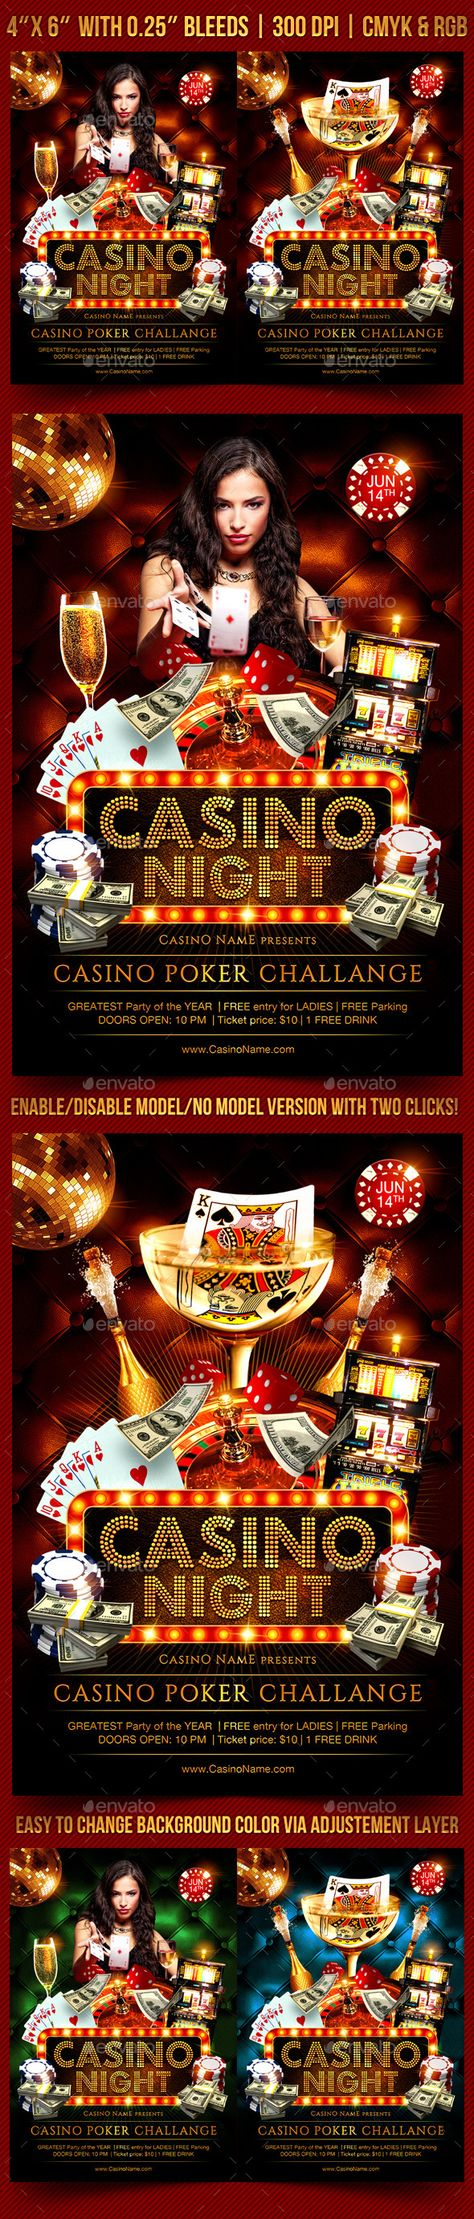 Poker Run Flyer Template Pictures Poker Run Flyer Template Images